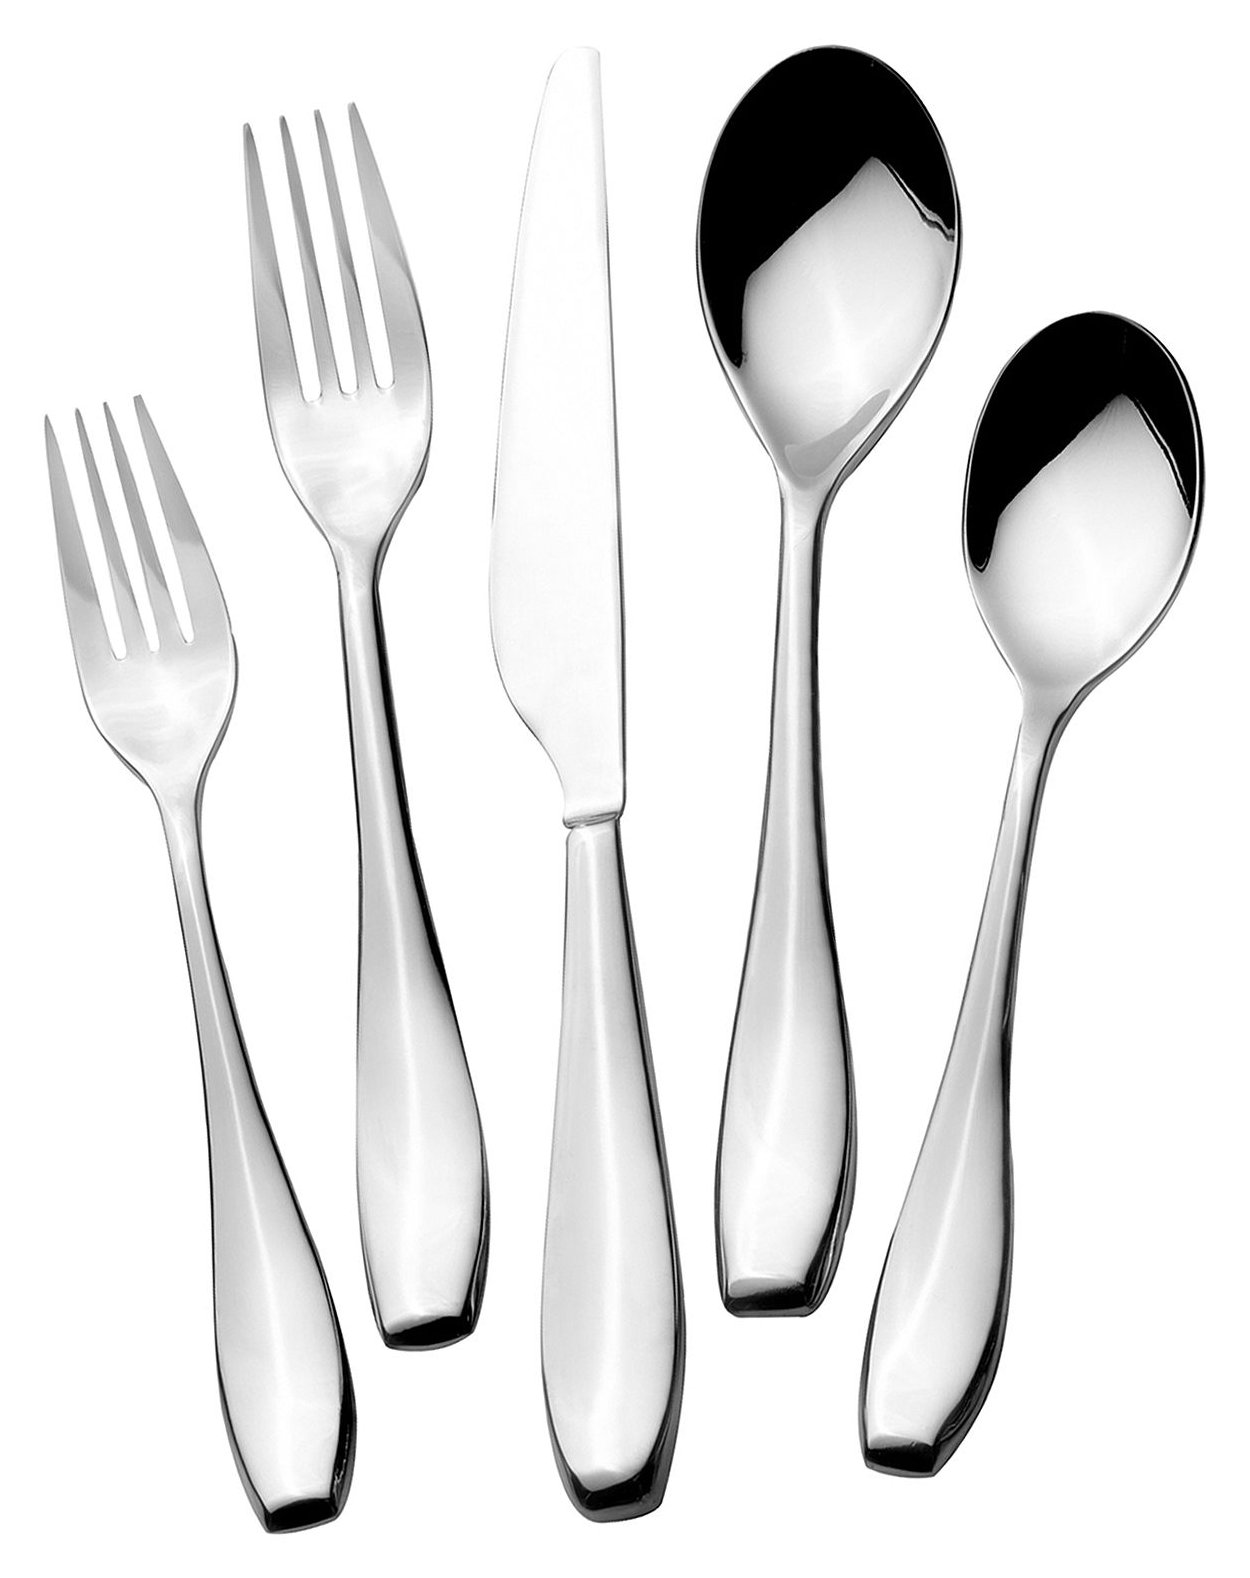 Exquisite towle flatware 5 piece stainless steel flatware set for serveware ideas